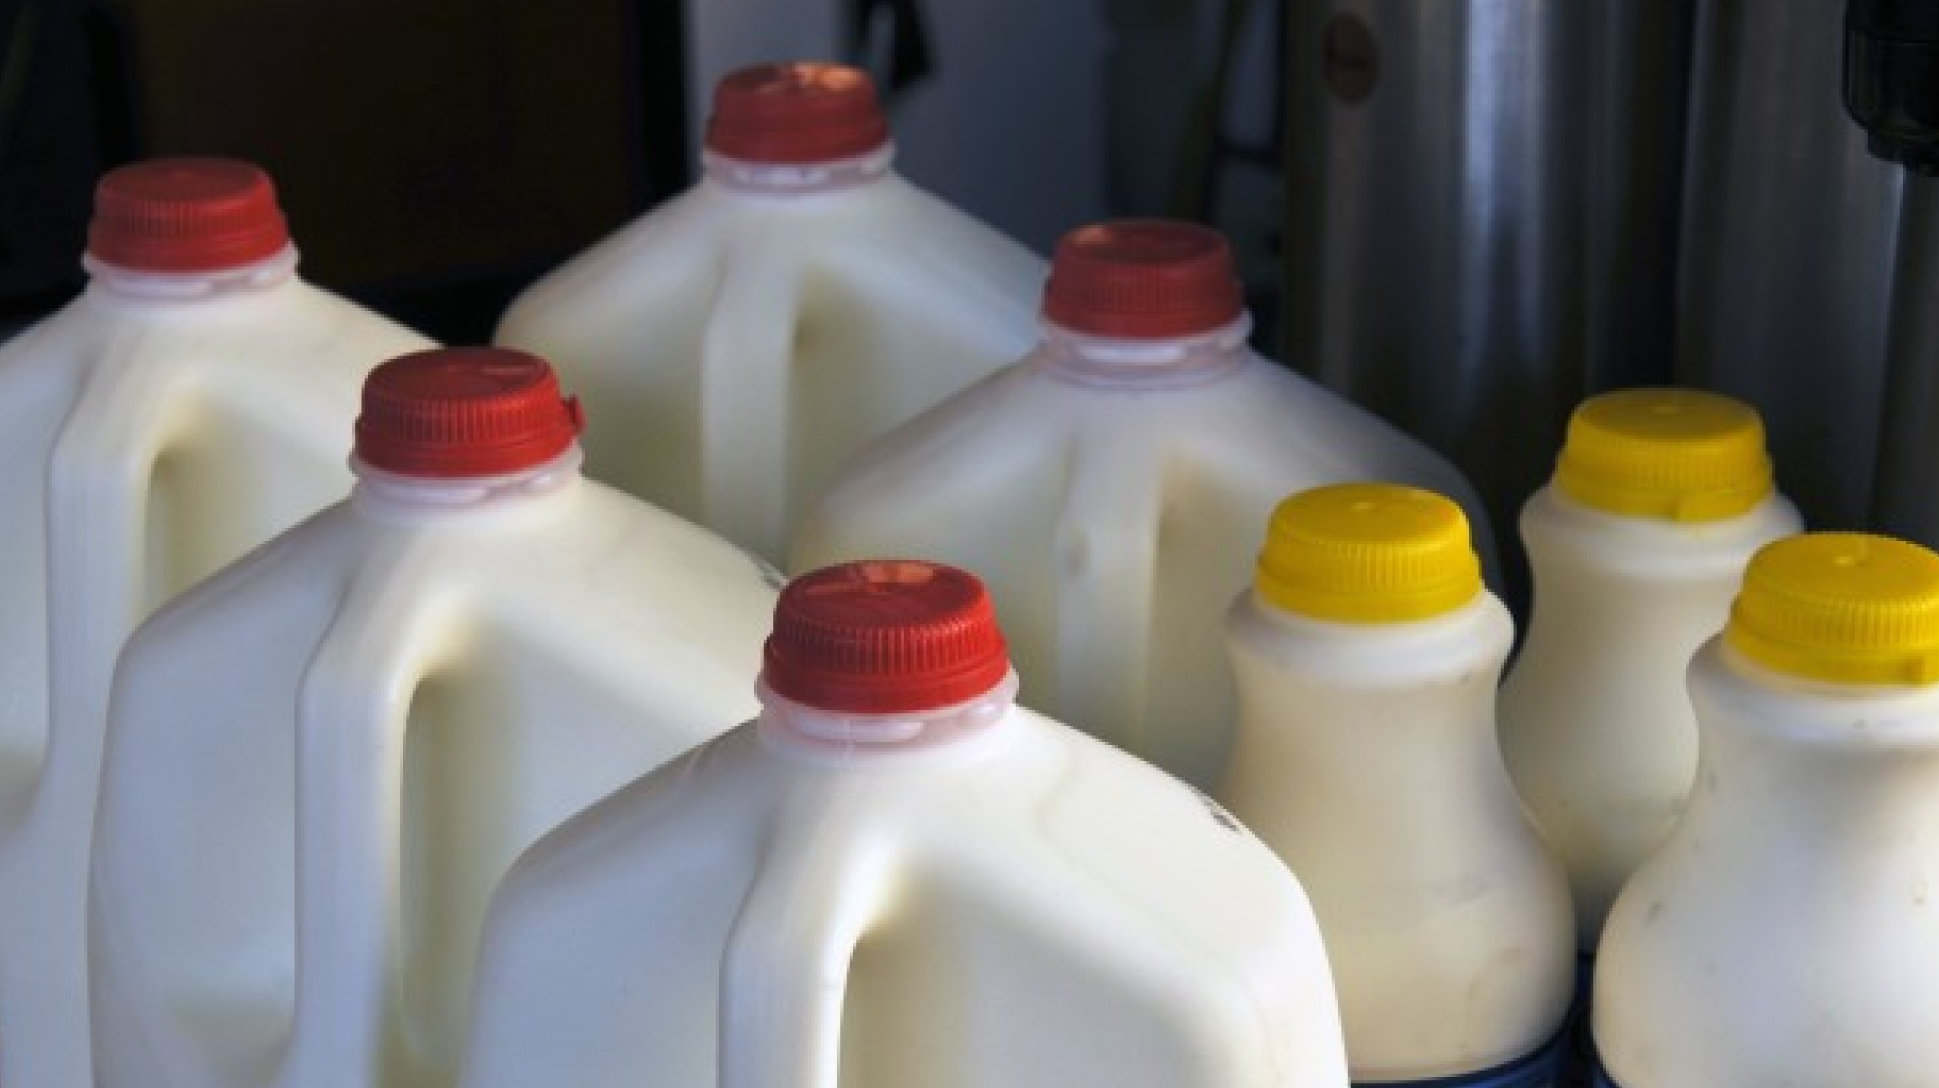 Bottles of milk